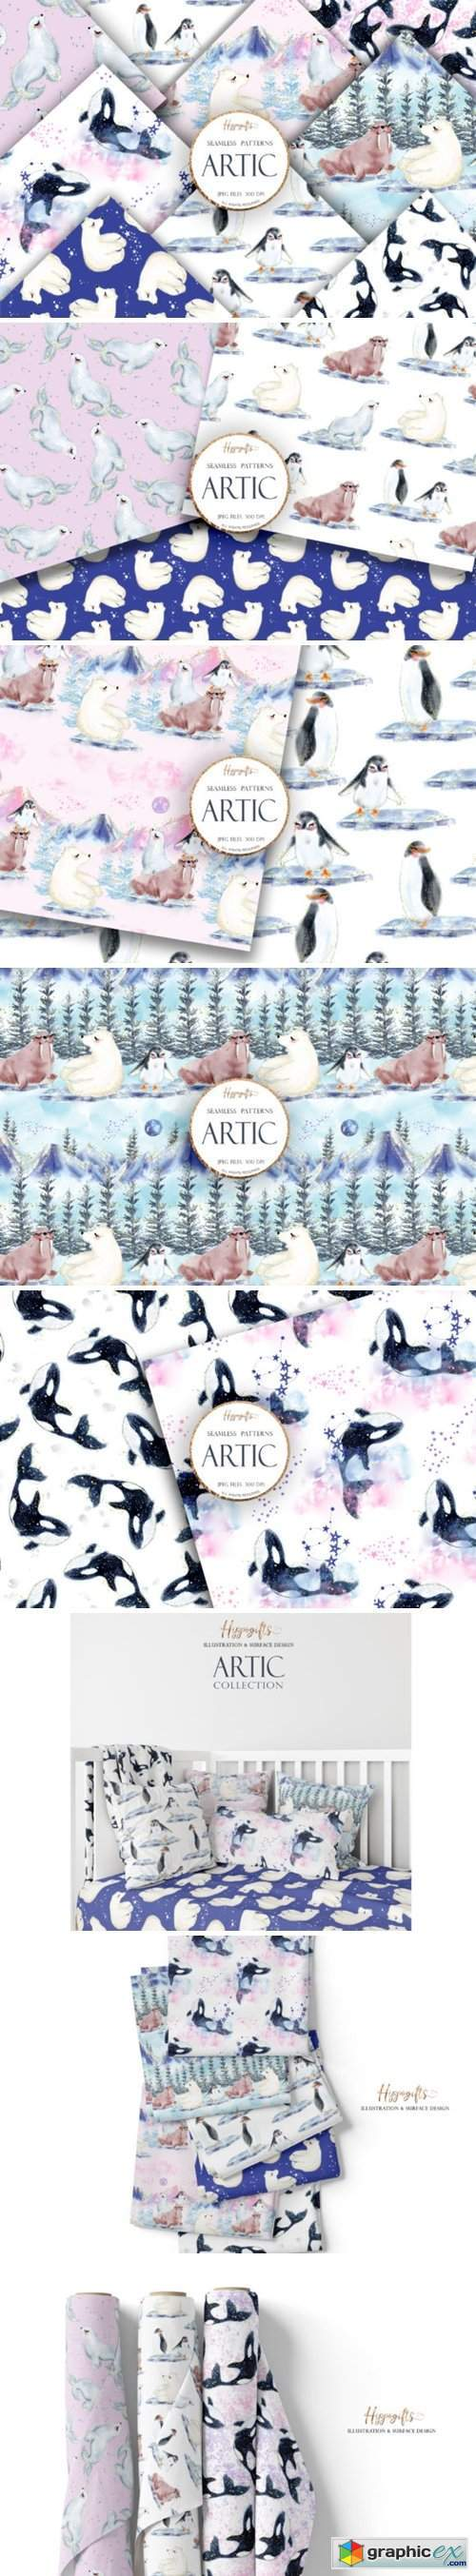 Artic Animals Patterns